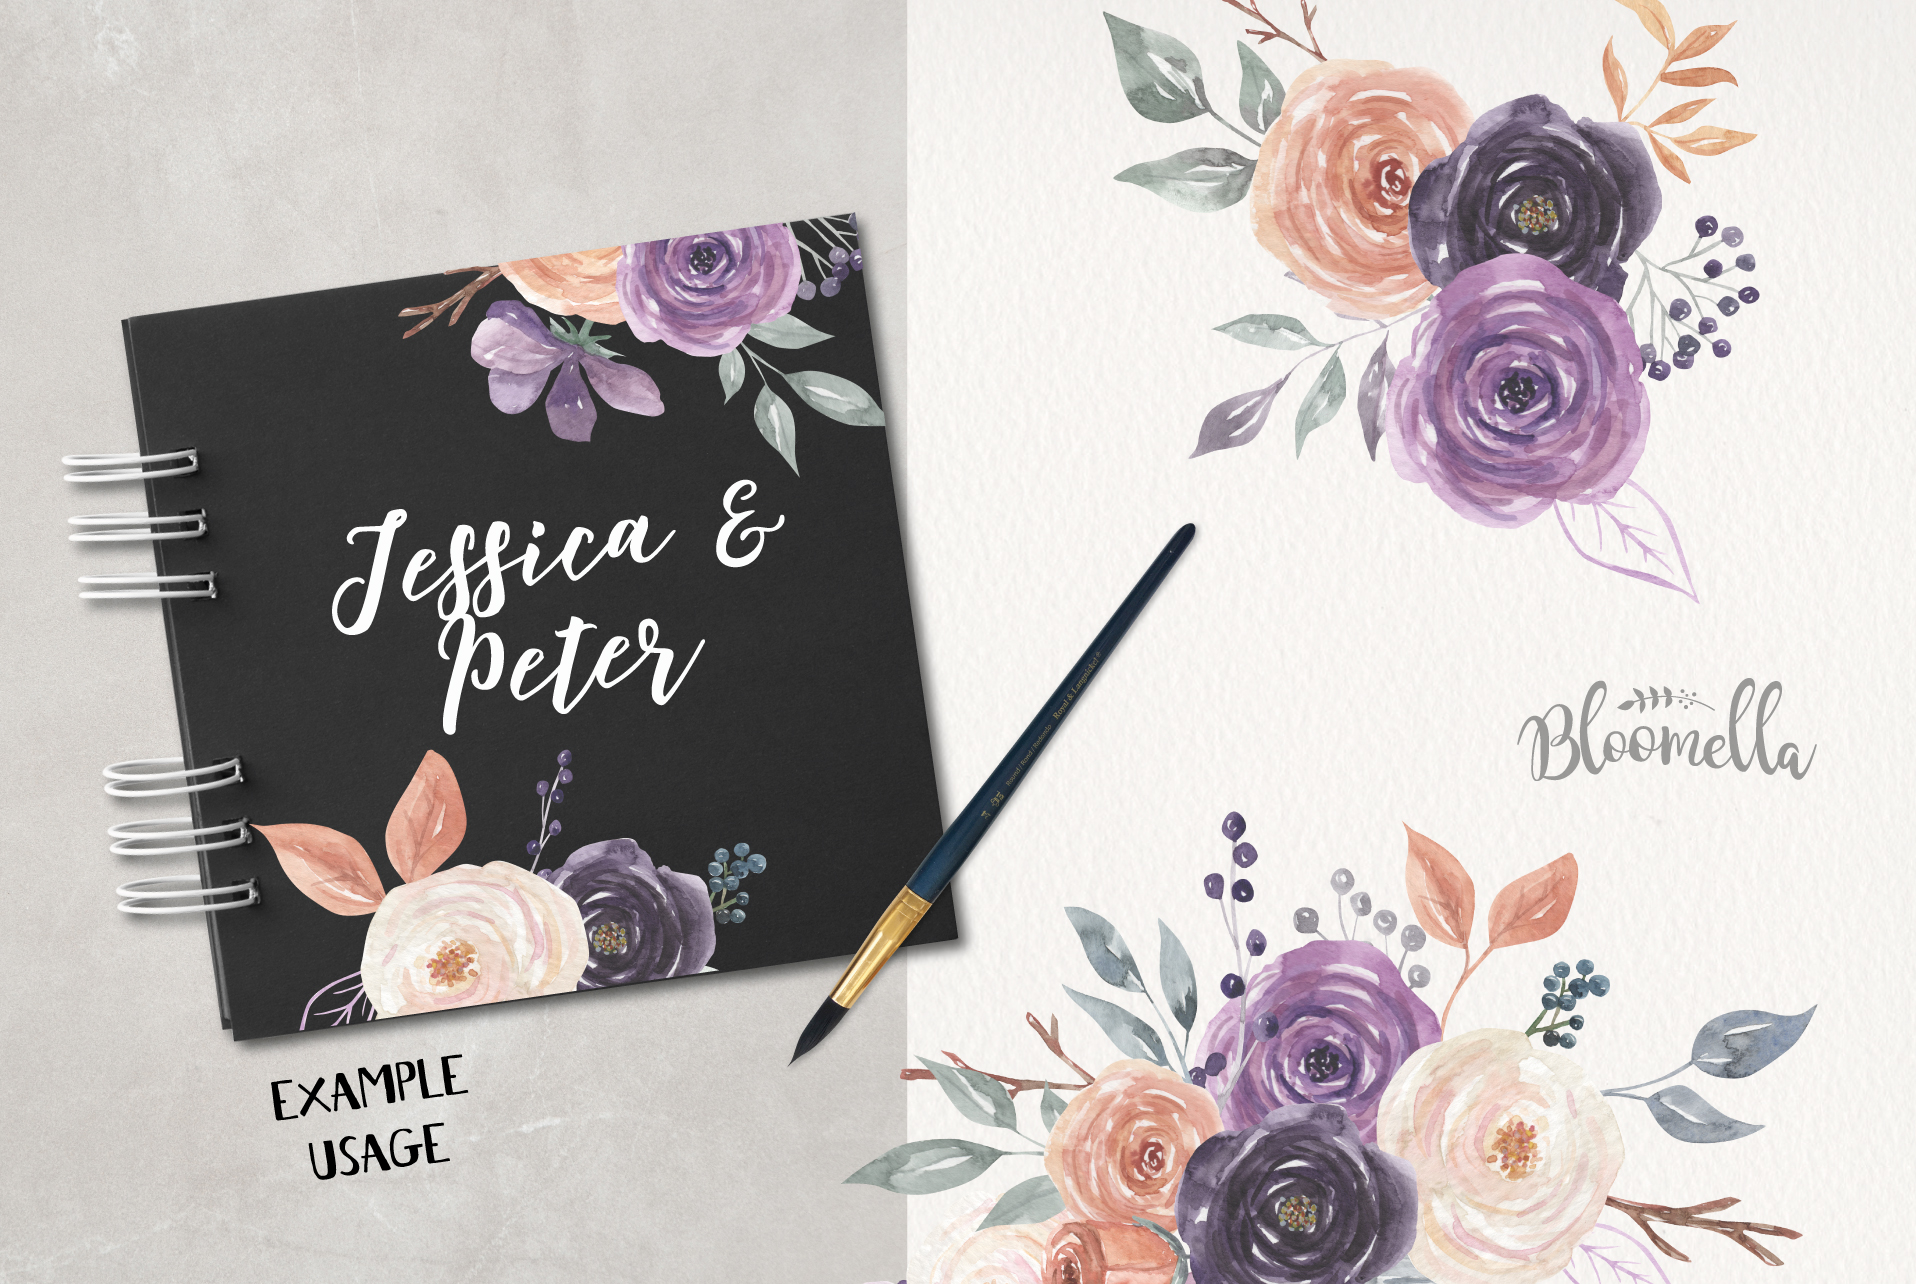 Mystical Watercolor 8 Clipart Bouquets Flowers Berries example image 4